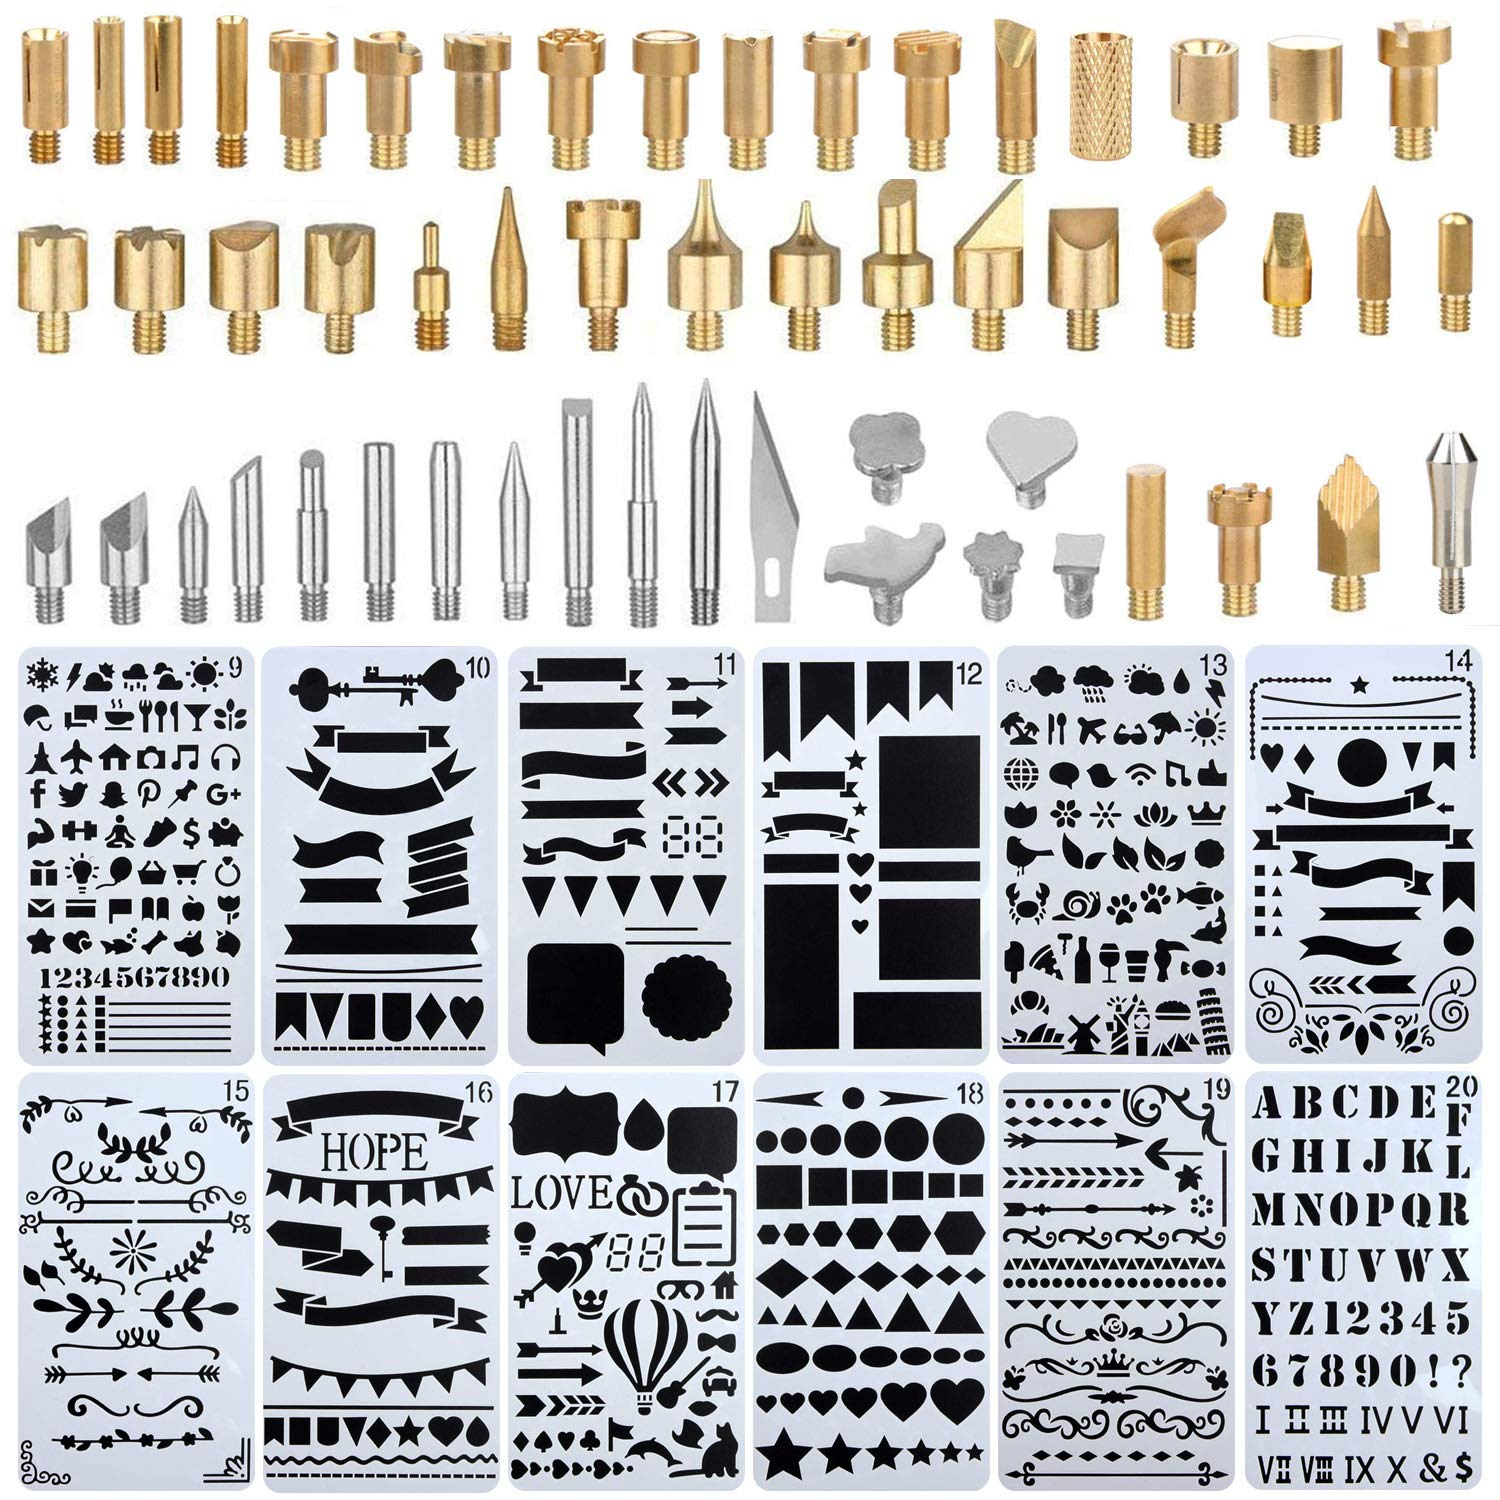 Uhbgt Wood Burning Accessories 65 Pcs Tip Stencil Soldering Iron Pyrography Working Carving Engraving Craft Tools For Buy Online In Jamaica At Desertcart